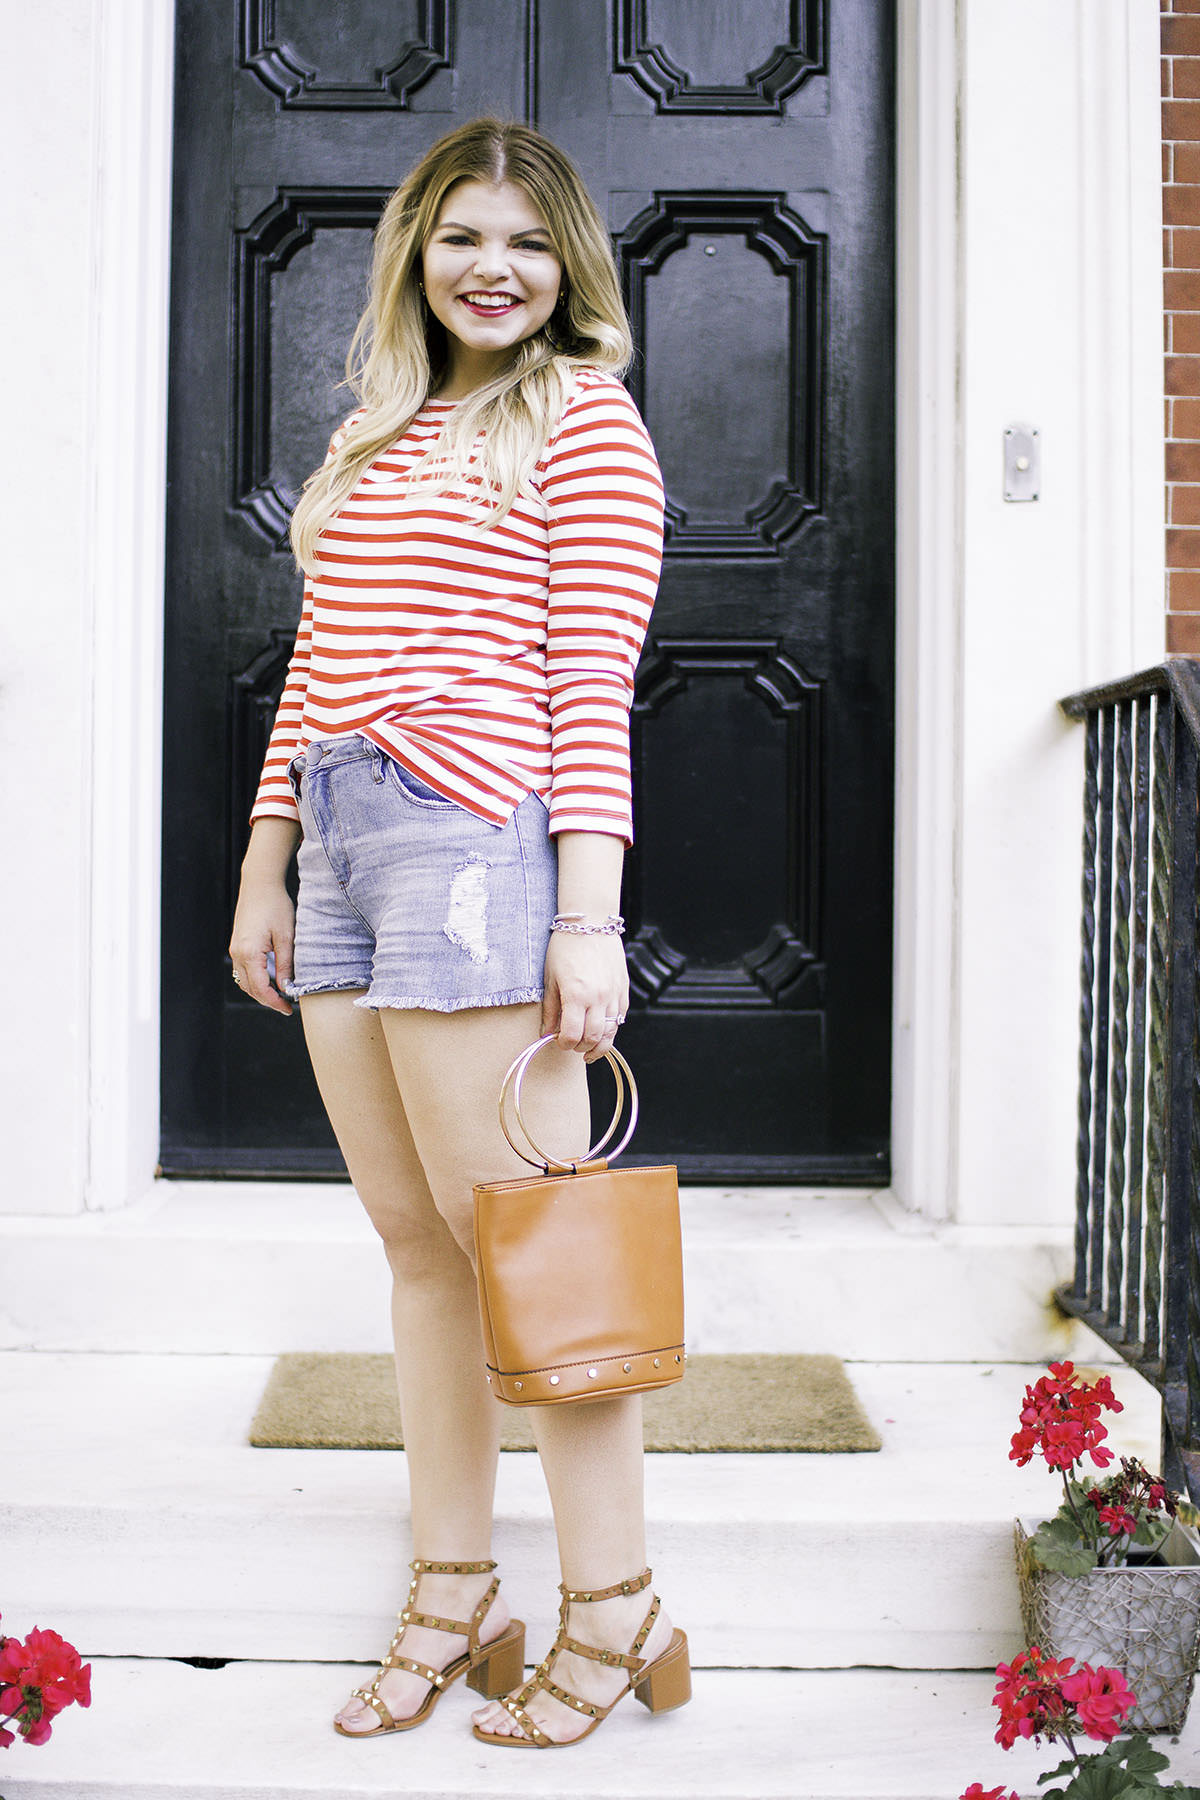 Fourth of July Outfit with Lacey Anne Douthat of The Glitter Gospel Blog, J Crew, Red Stripes, Denim Shorts, Studded Sandals, Cesca for Target Bag, Mac Ruby Woo Lipstick